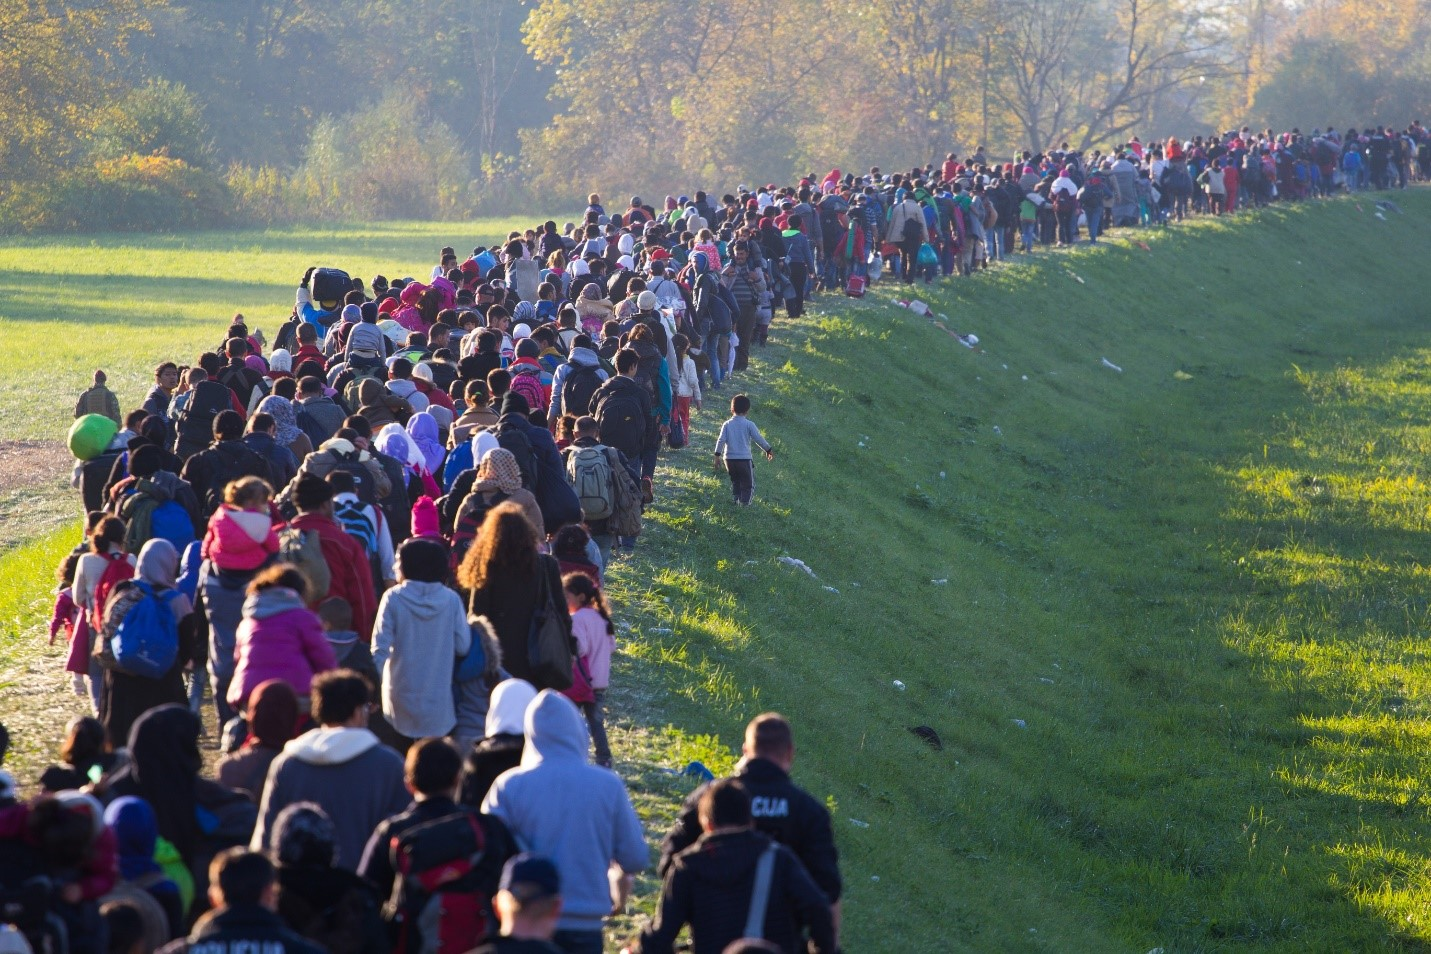 Hundreds of Slovenia refugee children and families travel together across a countryside on foot.